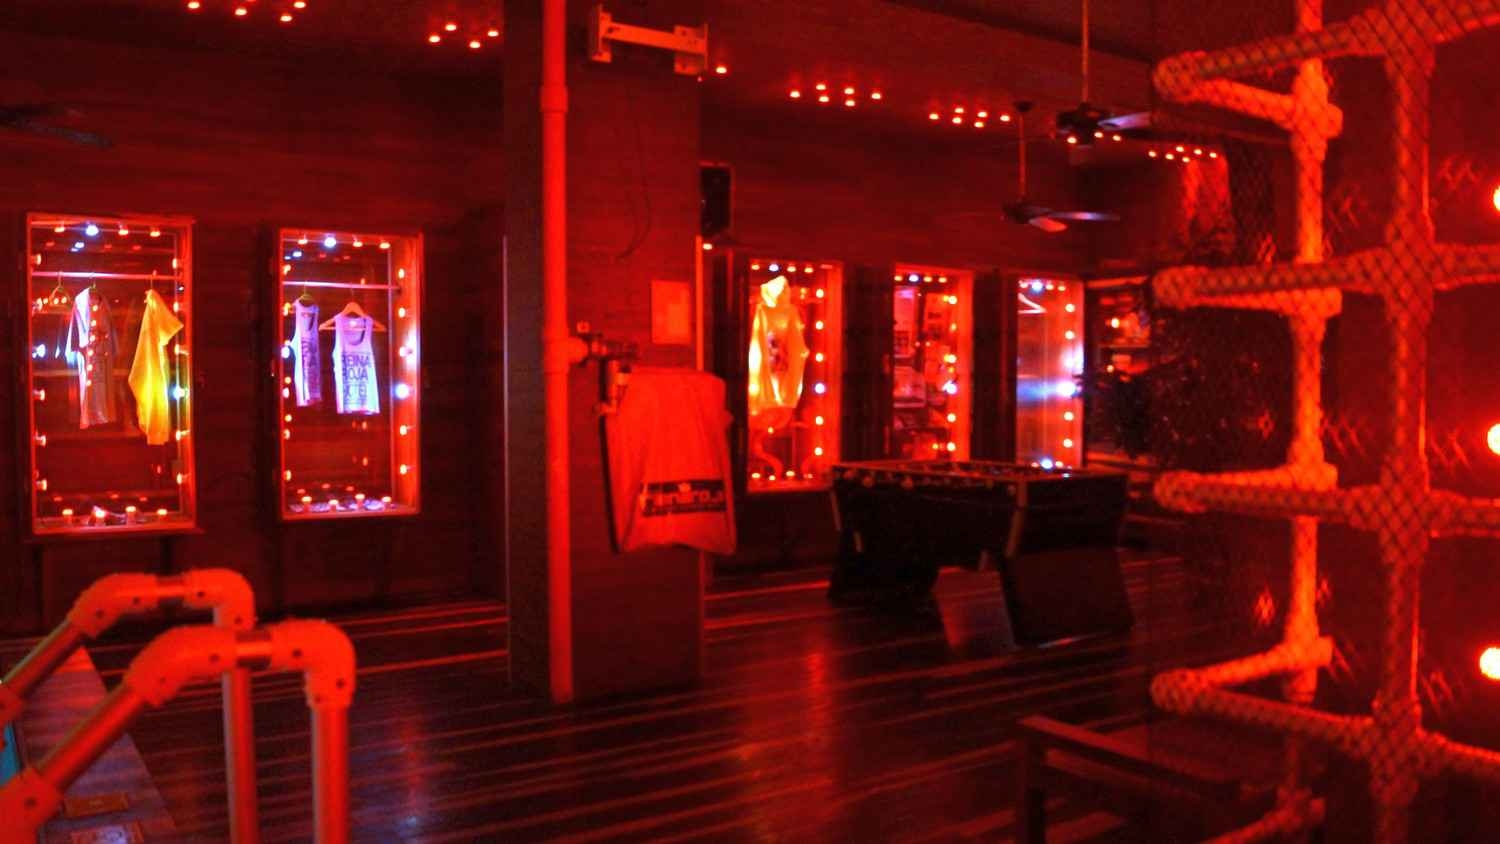 A look inside one of the most provocative lounges in Playa Del Carmen.